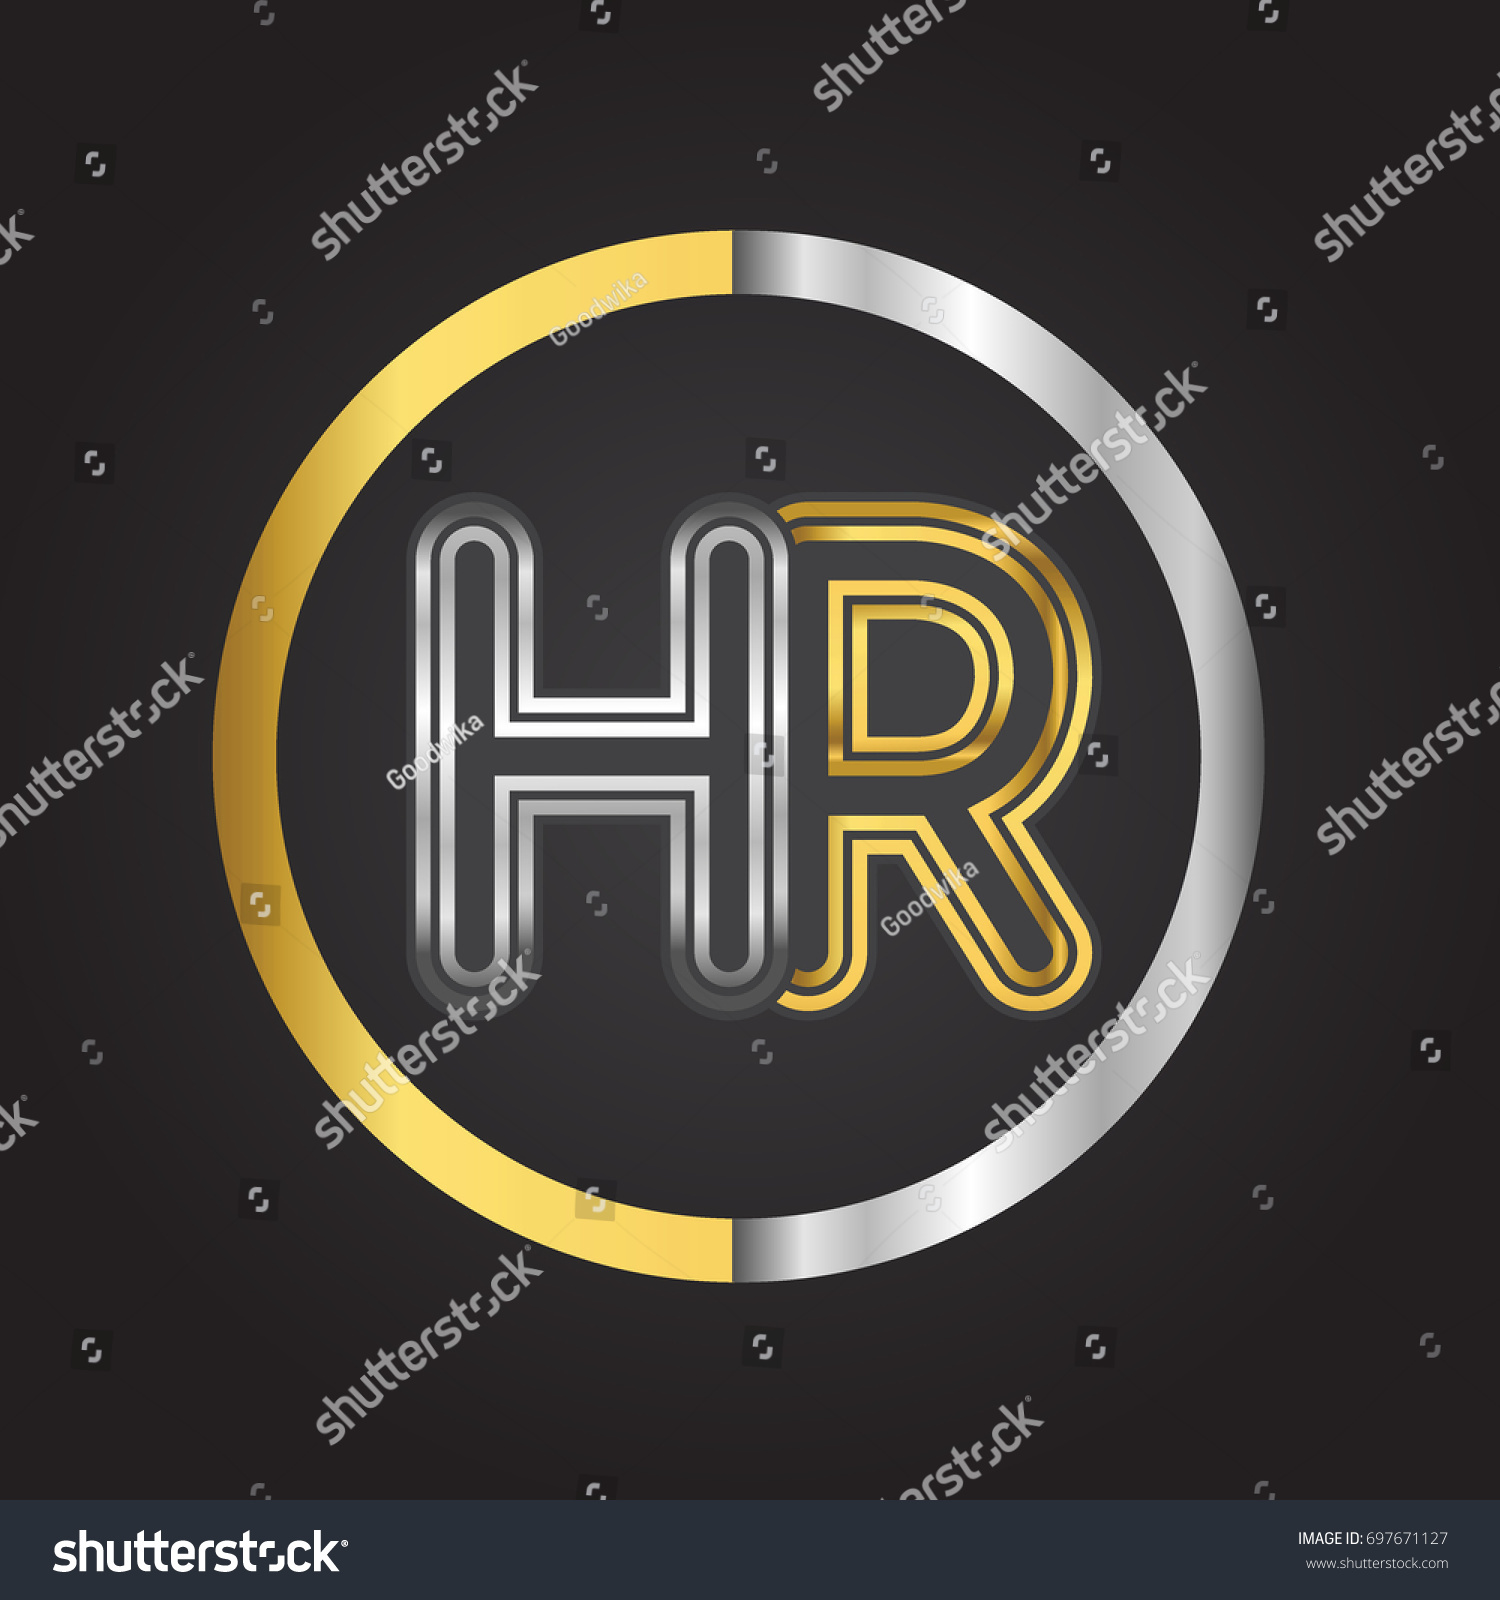 Hr Letter Logo In A Circle. Gold And Silver Colored. Vector Design Template  Elements